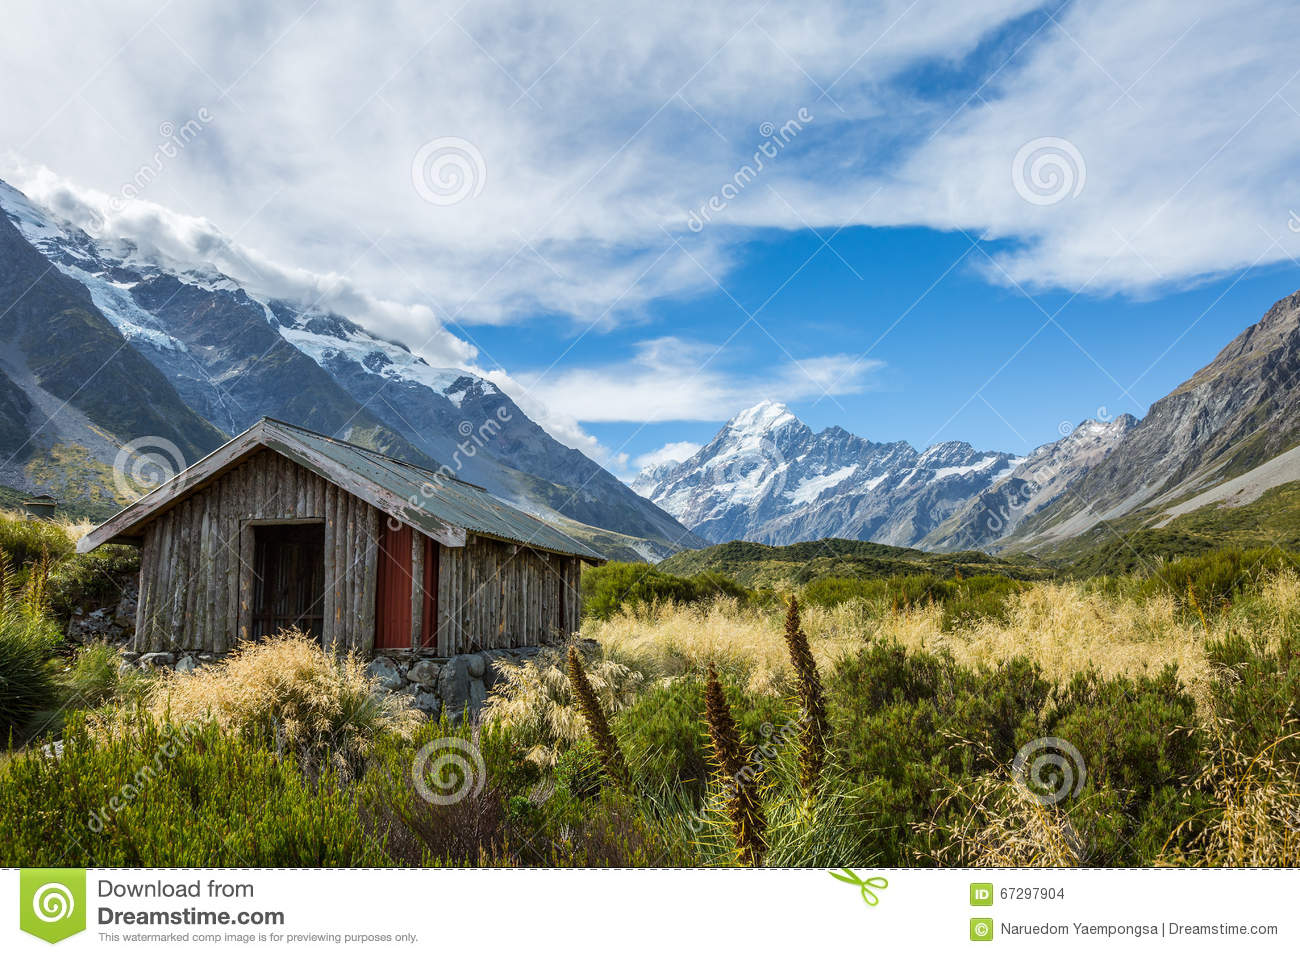 Hooker Valley clipart #9, Download drawings